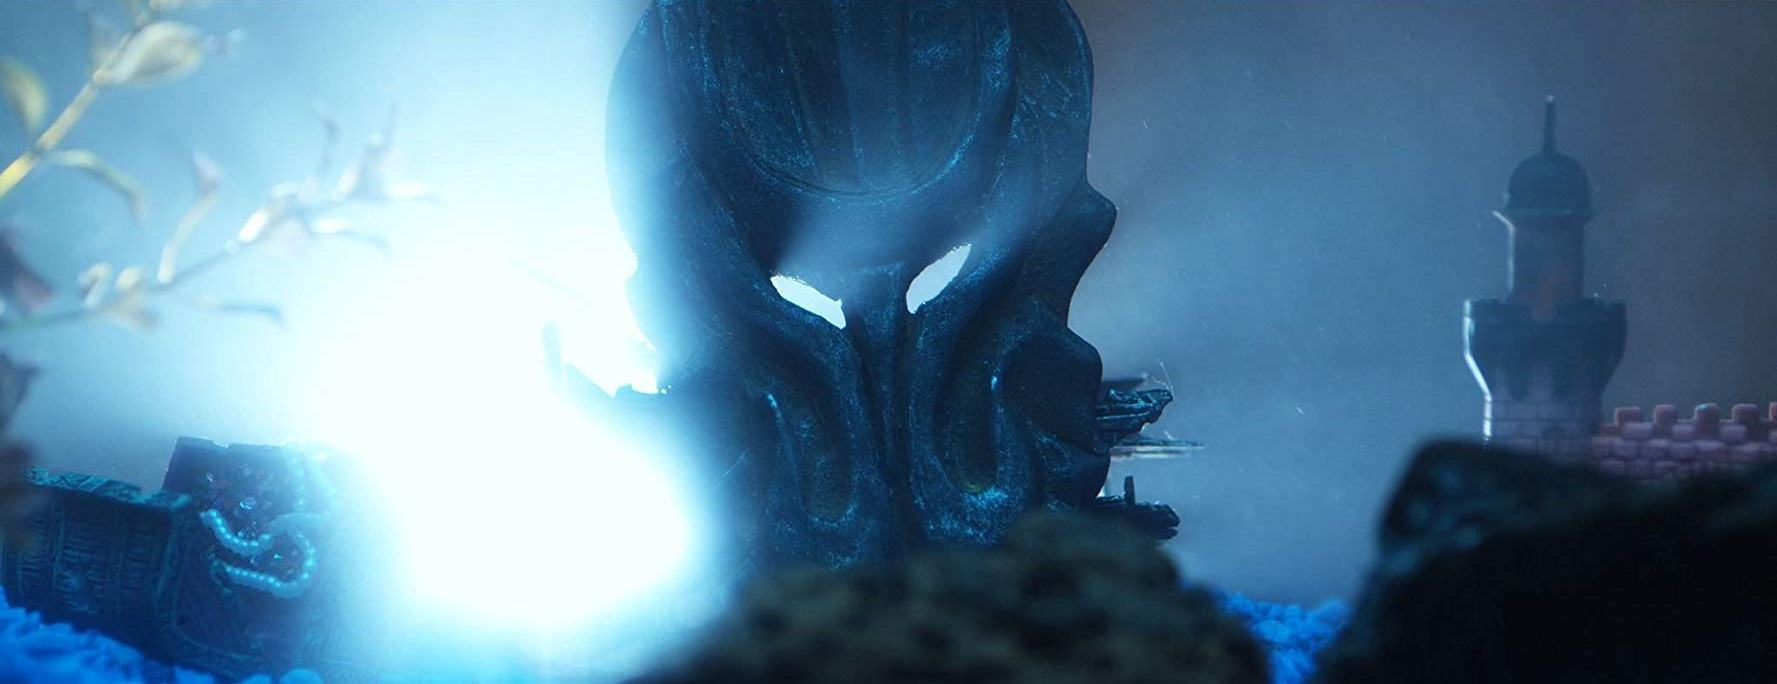 Cthulhu stirs from his resting place in the lost city of R'yleh in The Last Lovecraft: Relic of Cthulu (2009)